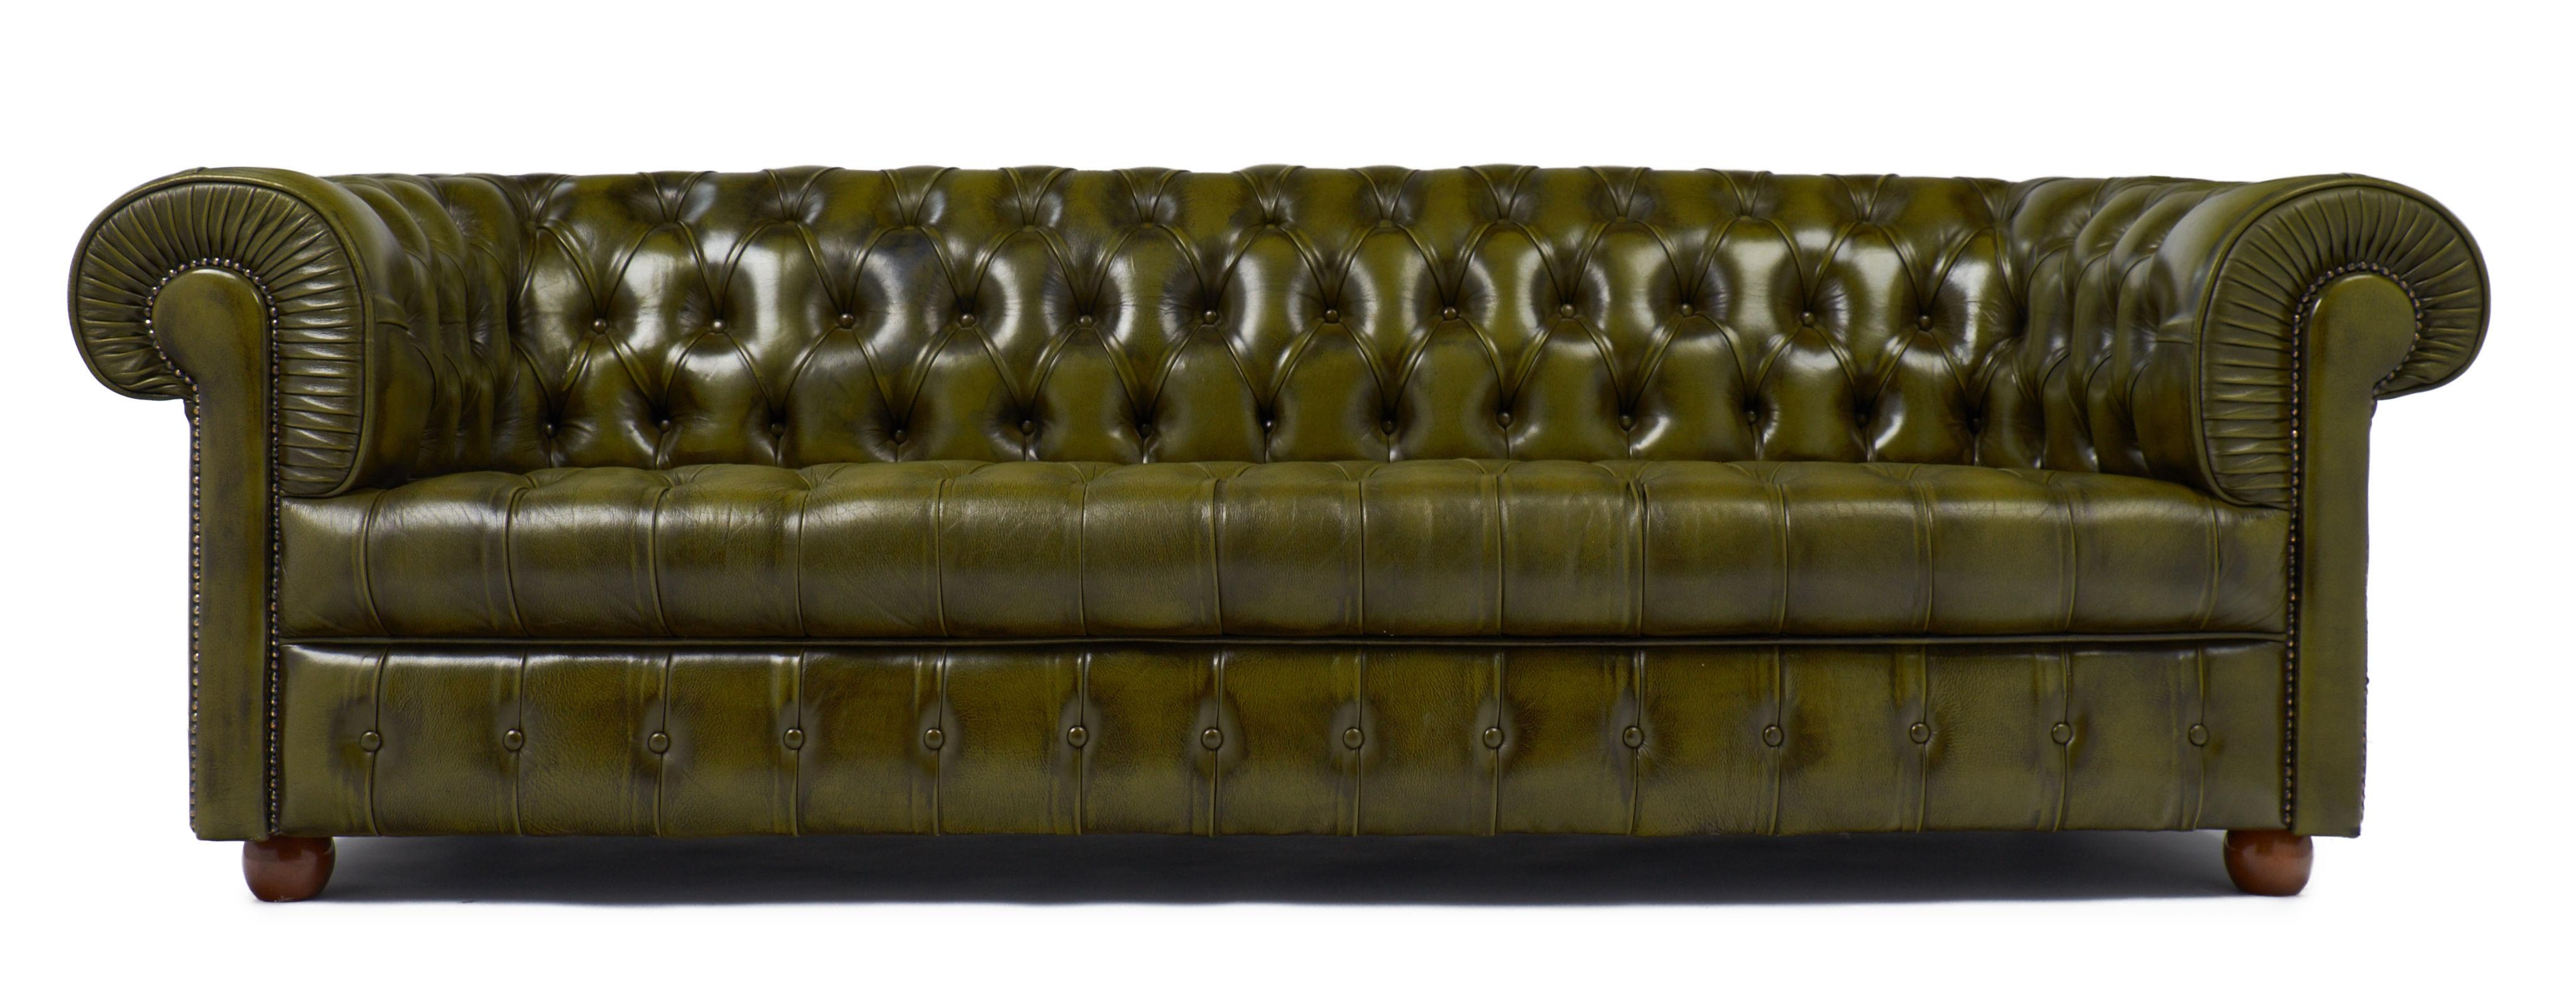 Vintage Green Leather English Chesterfield Sofa - Jean Marc Fray intended for Vintage Chesterfield Sofas